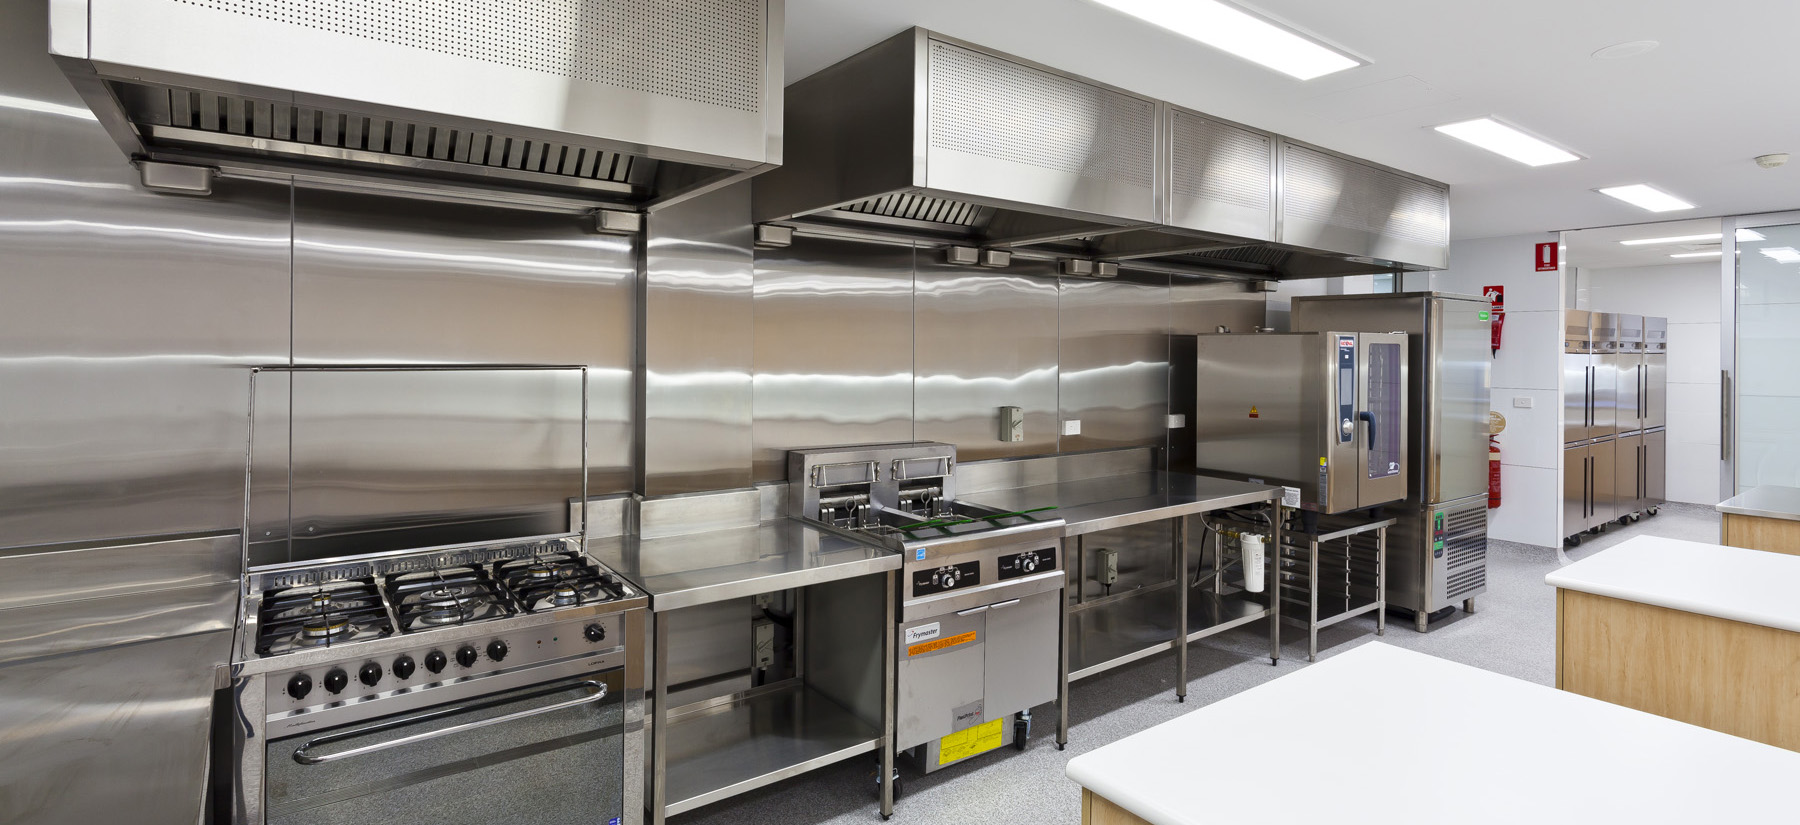 Commercial Appliance Repair Service in Coral Gables